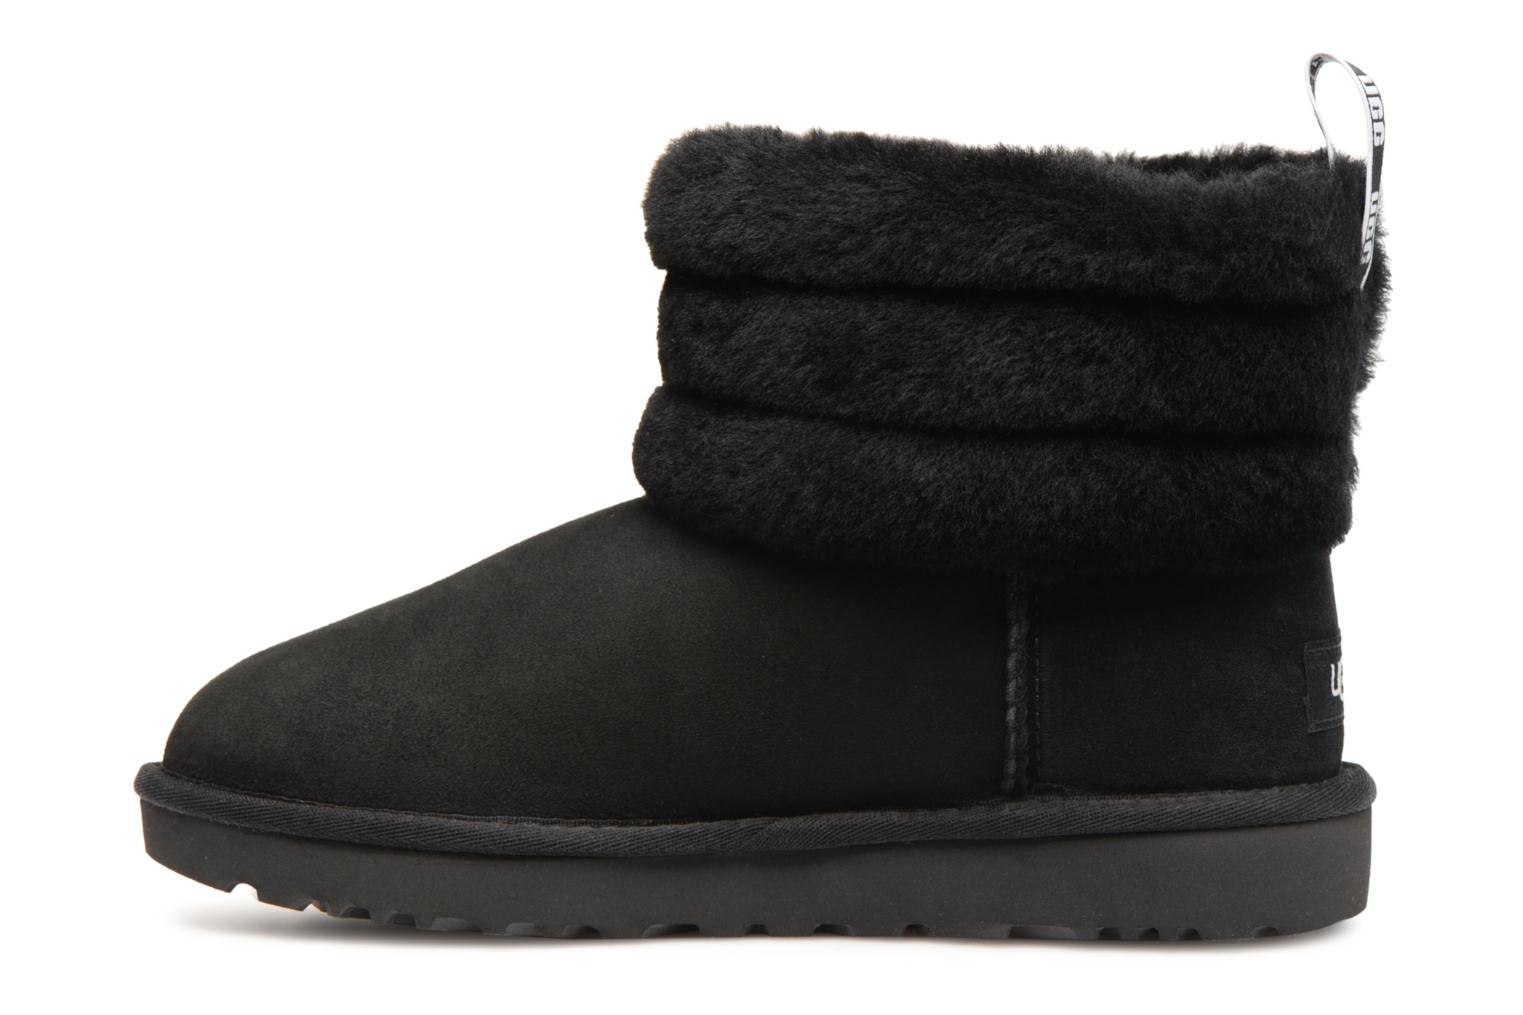 Bottines et boots UGG W Fluff Mini Quilted Noir vue face